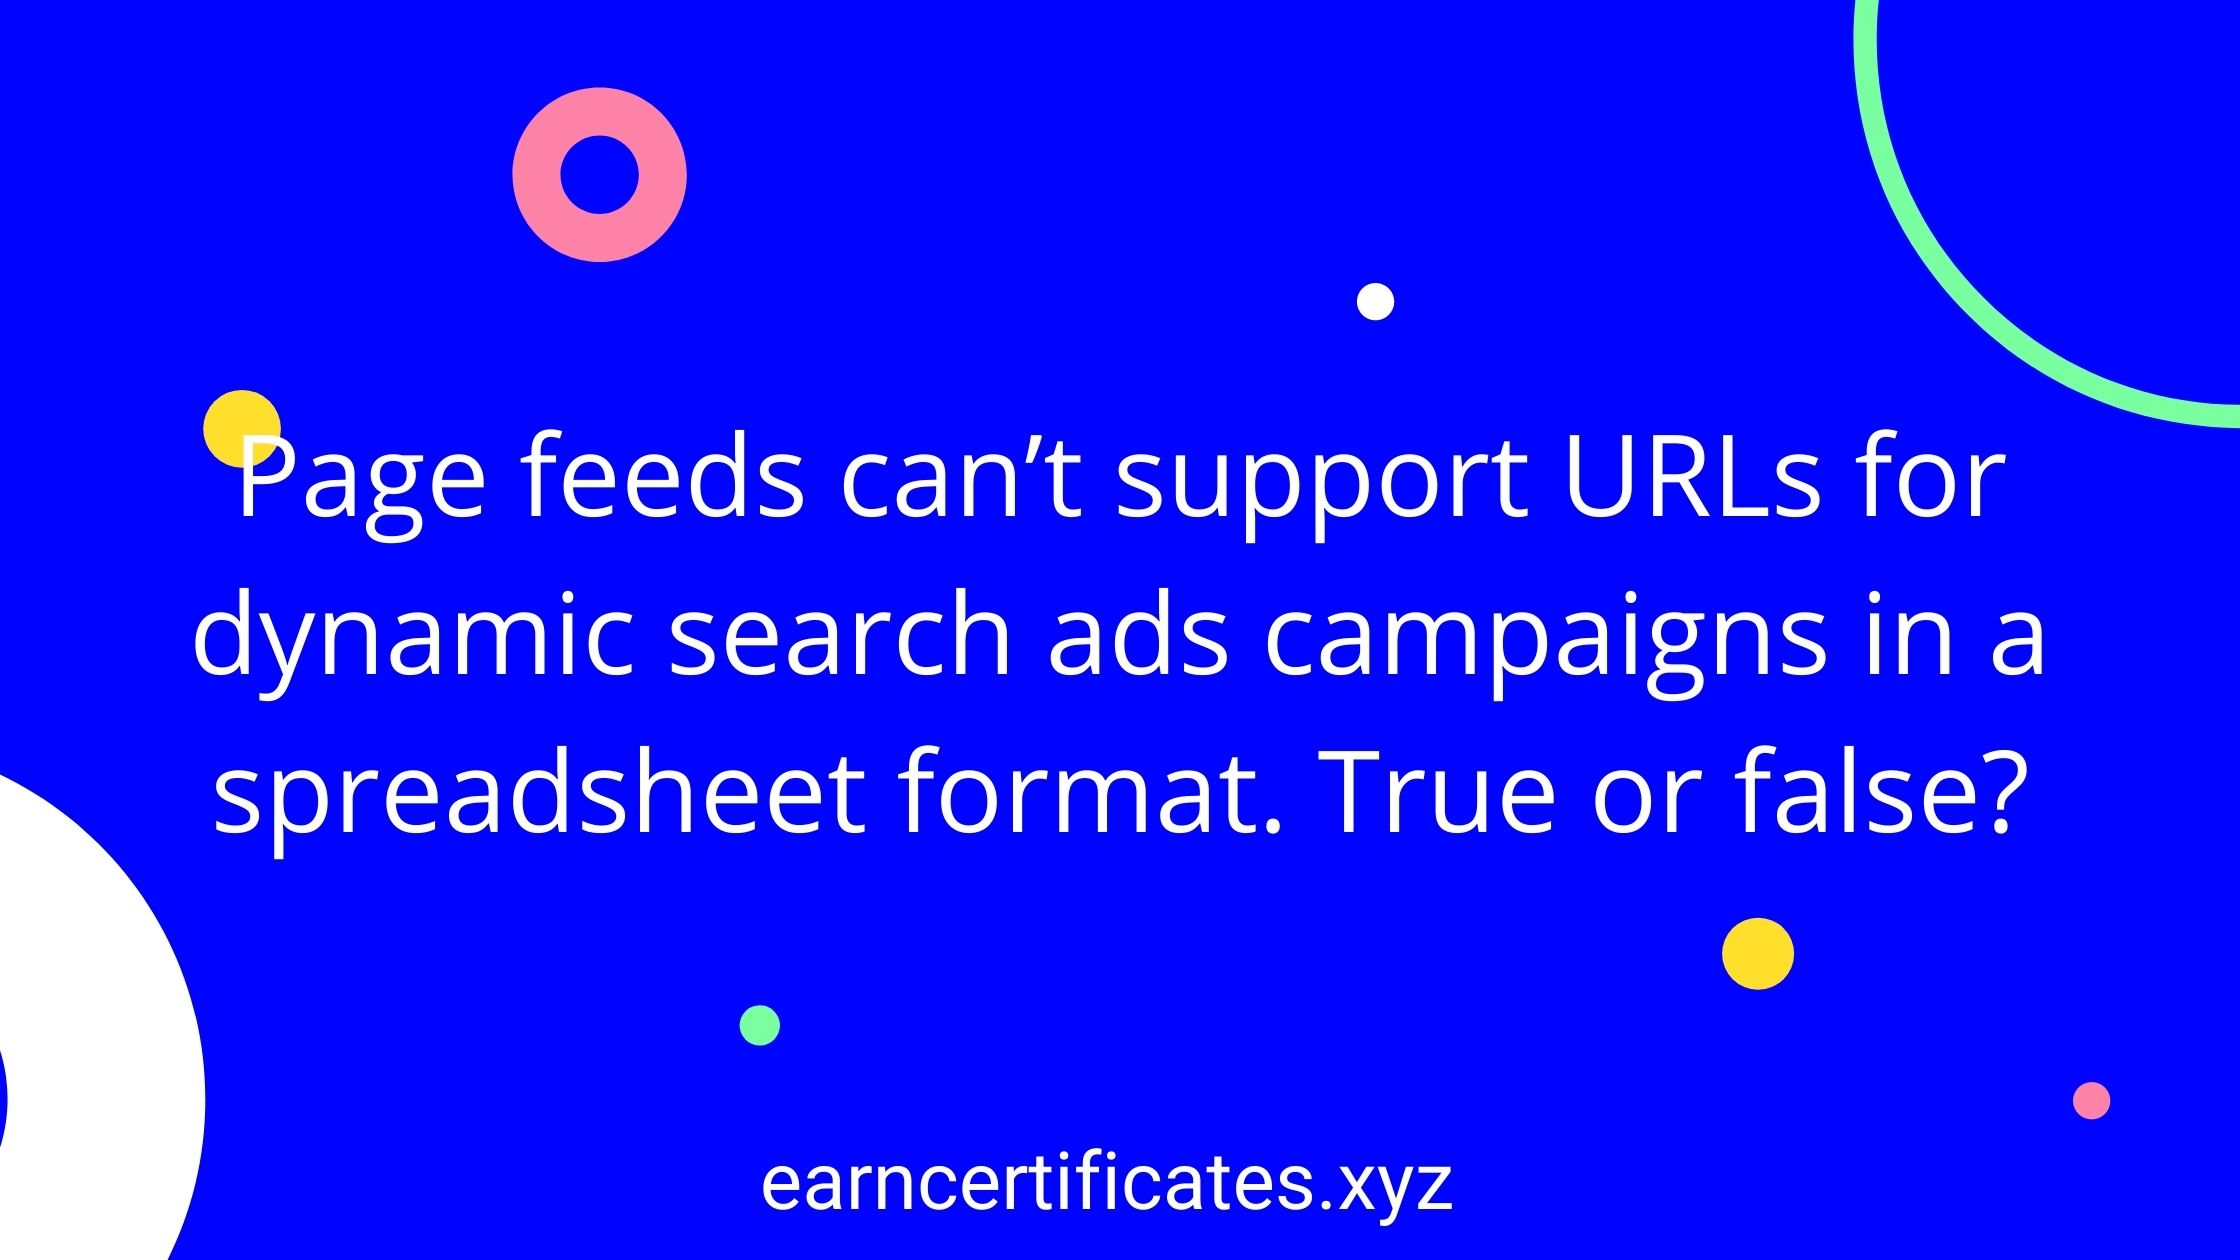 Page feeds can't support URLs for dynamic search ads campaigns in a spreadsheet format. True or false?